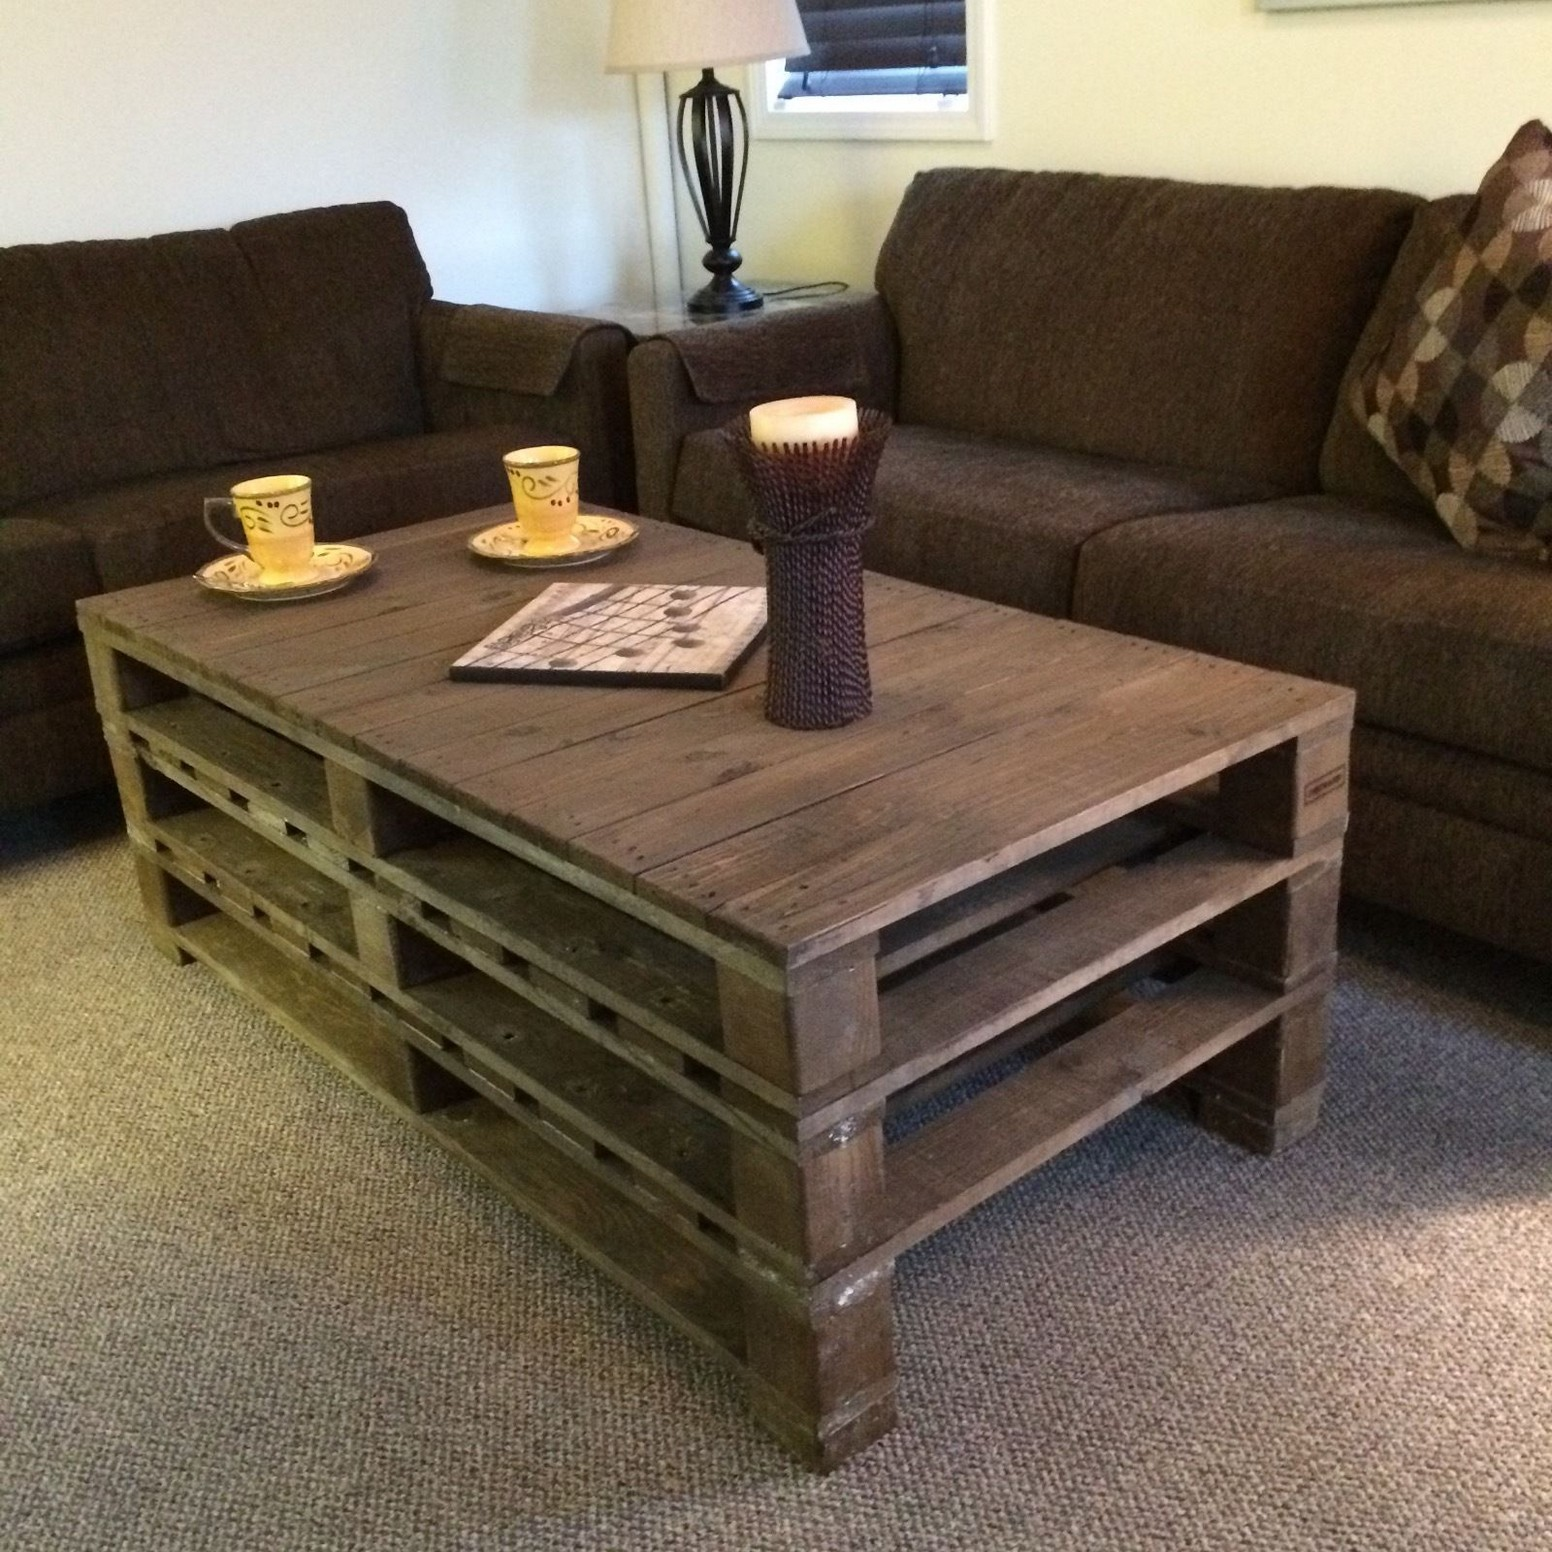 The Best 20 Diy Pallet Coffee Table Projects for Your Living Room - HGNV.COM